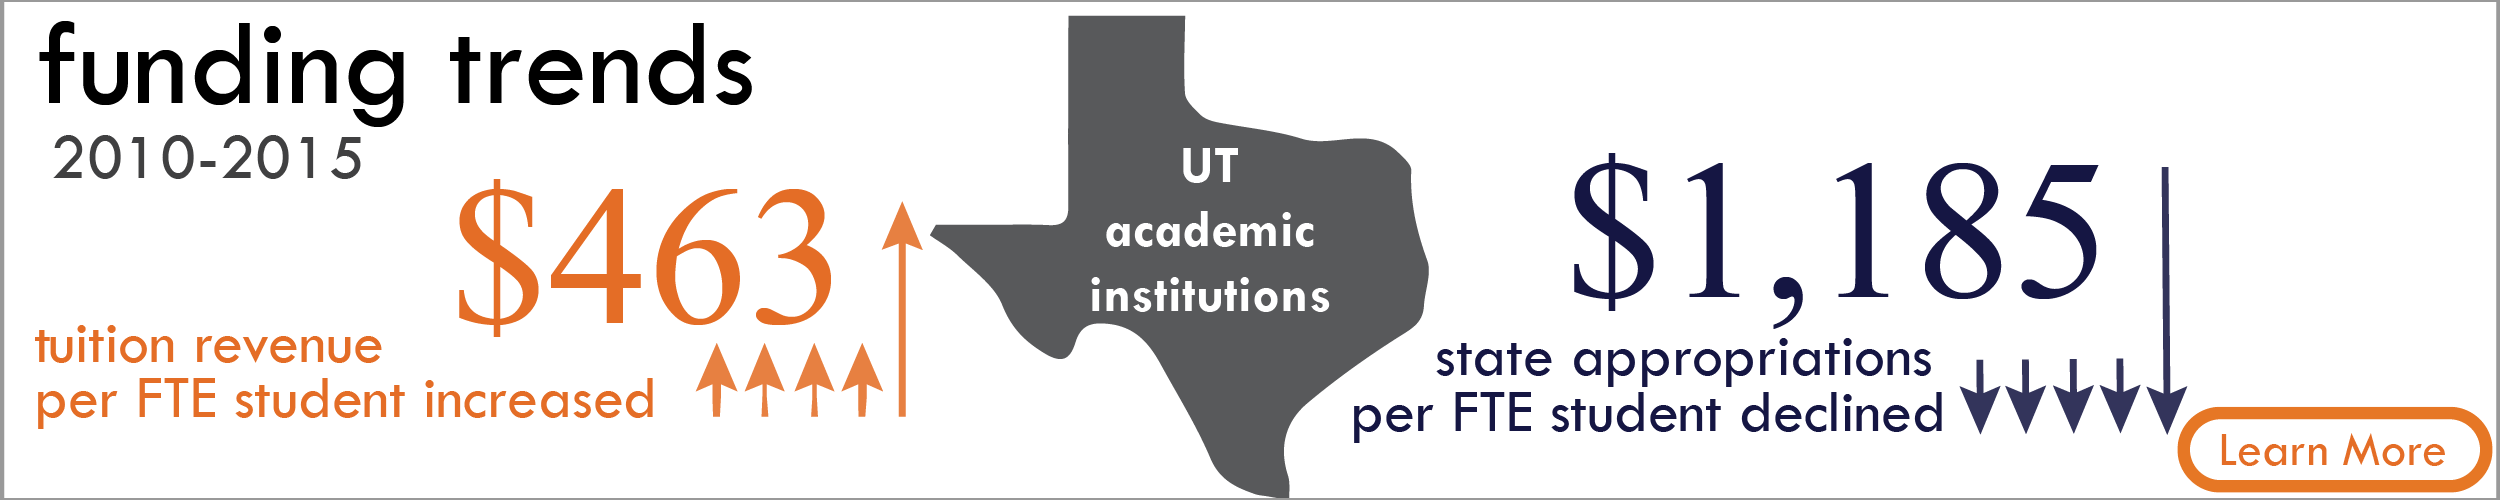 Funding Trends for 2010-2015. At UT academic institutions, tuition revenue per FTE student increased $463; state appropriations per FTE student declined. Learn more.